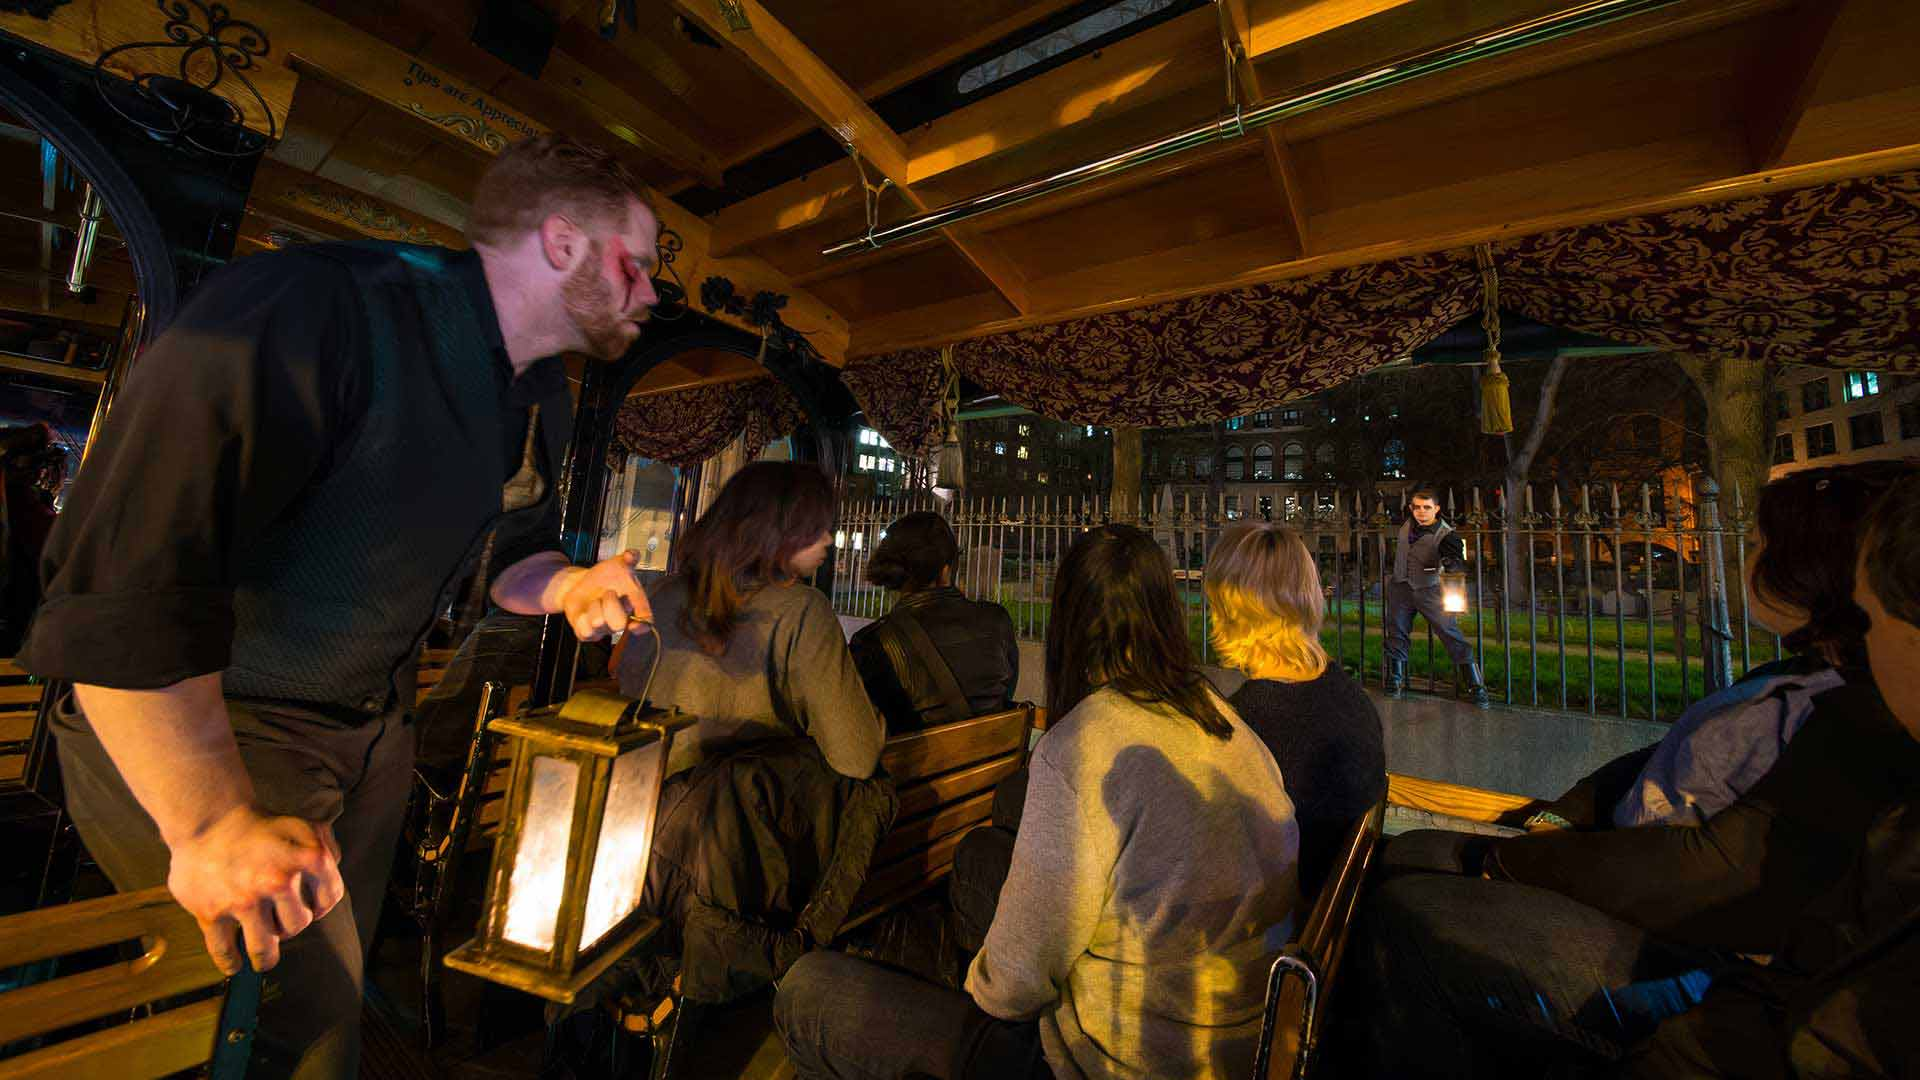 Ghost Tour Interior Of Trolley in Boston, Massachusetts